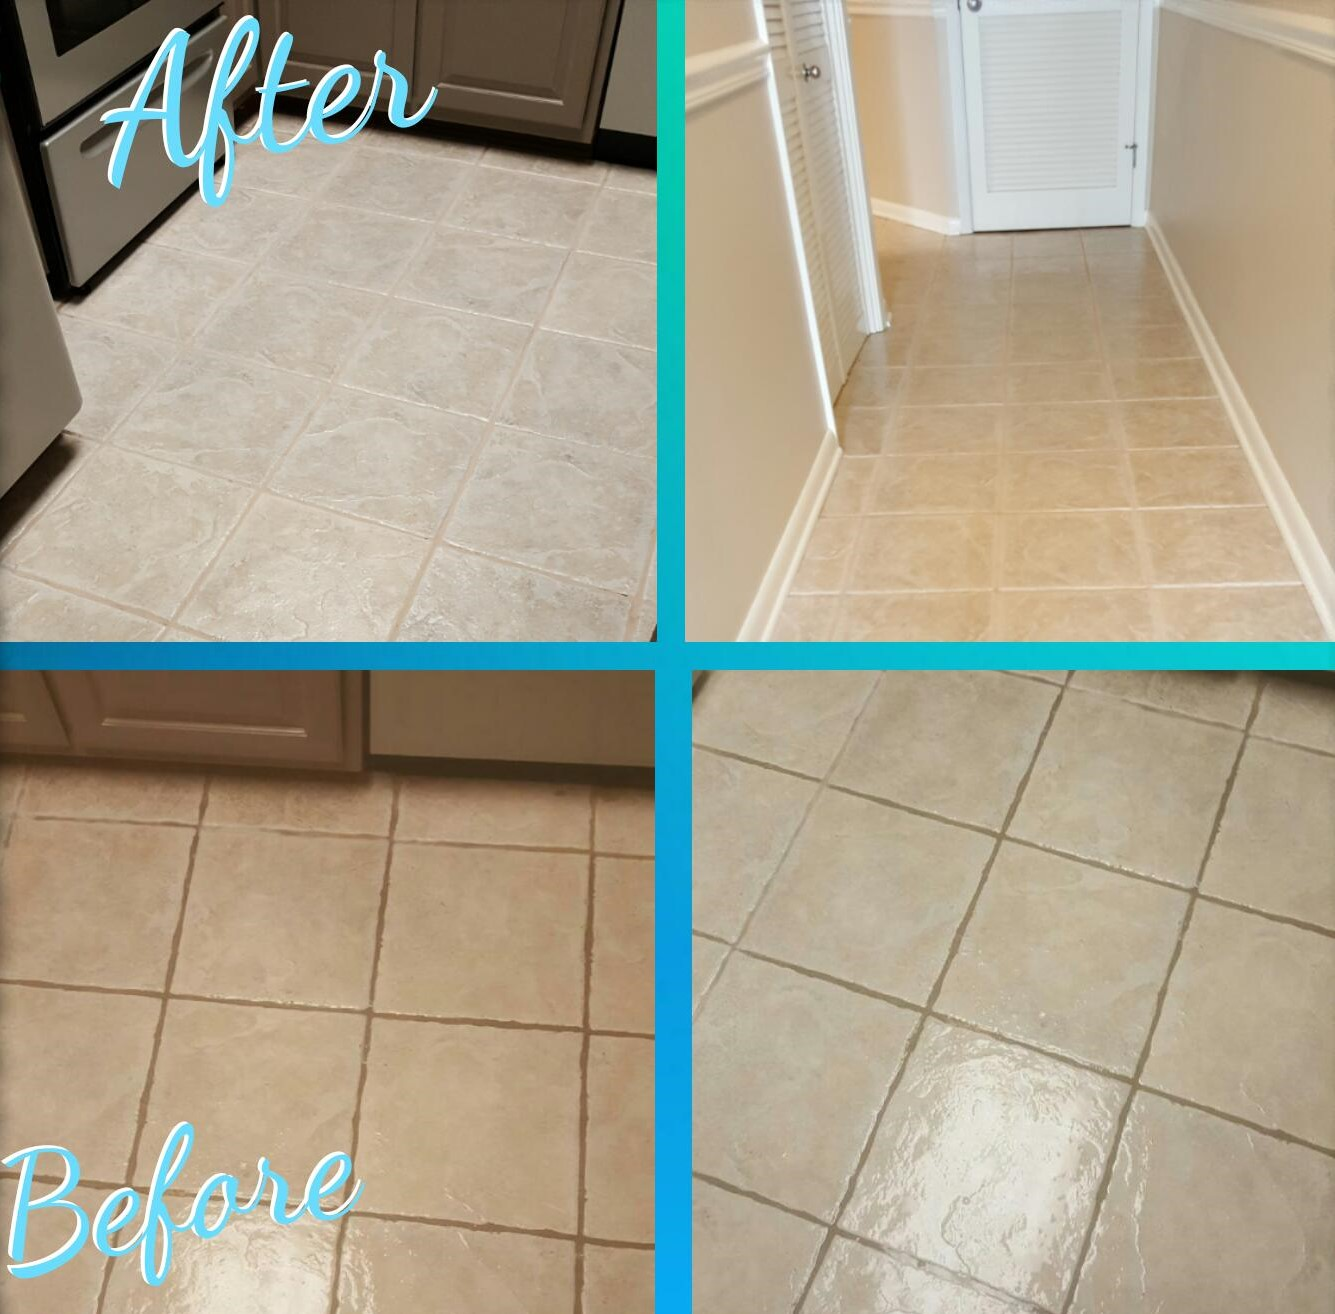 Premier tile and grout cleaners in mobile alabama carpet could i clean grout to look new dailygadgetfo Choice Image